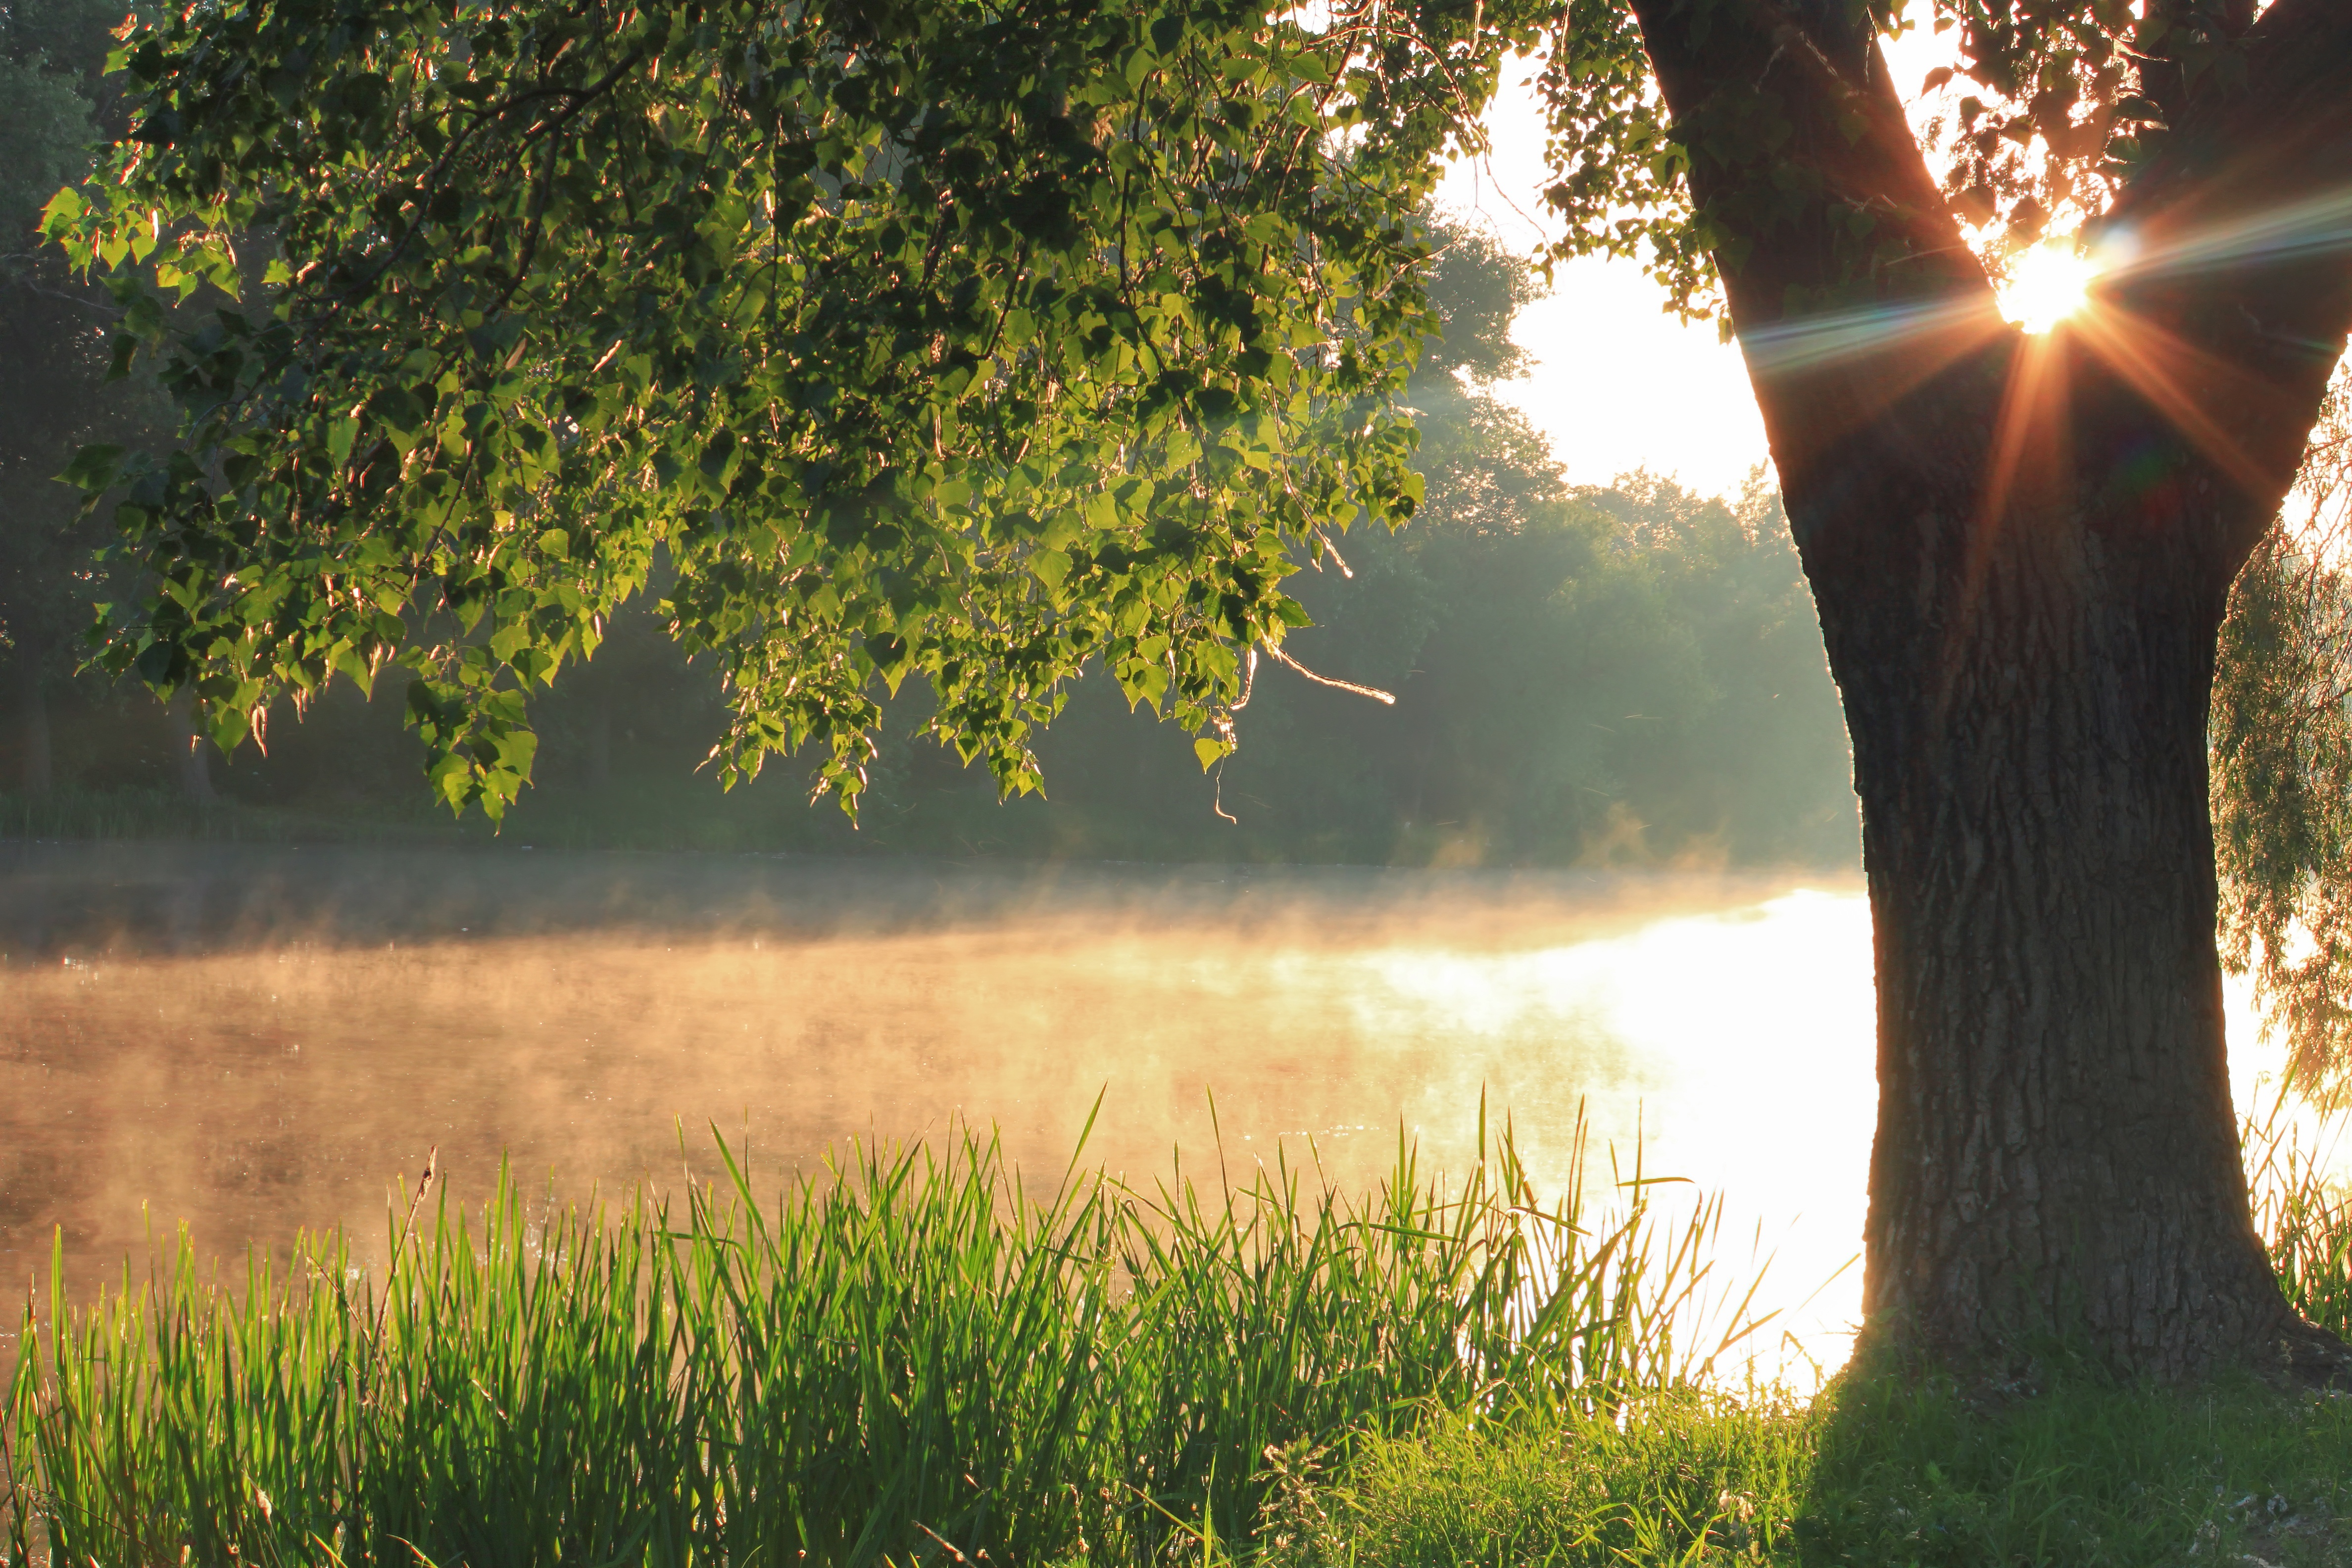 Mist rises from a pond at sunrise